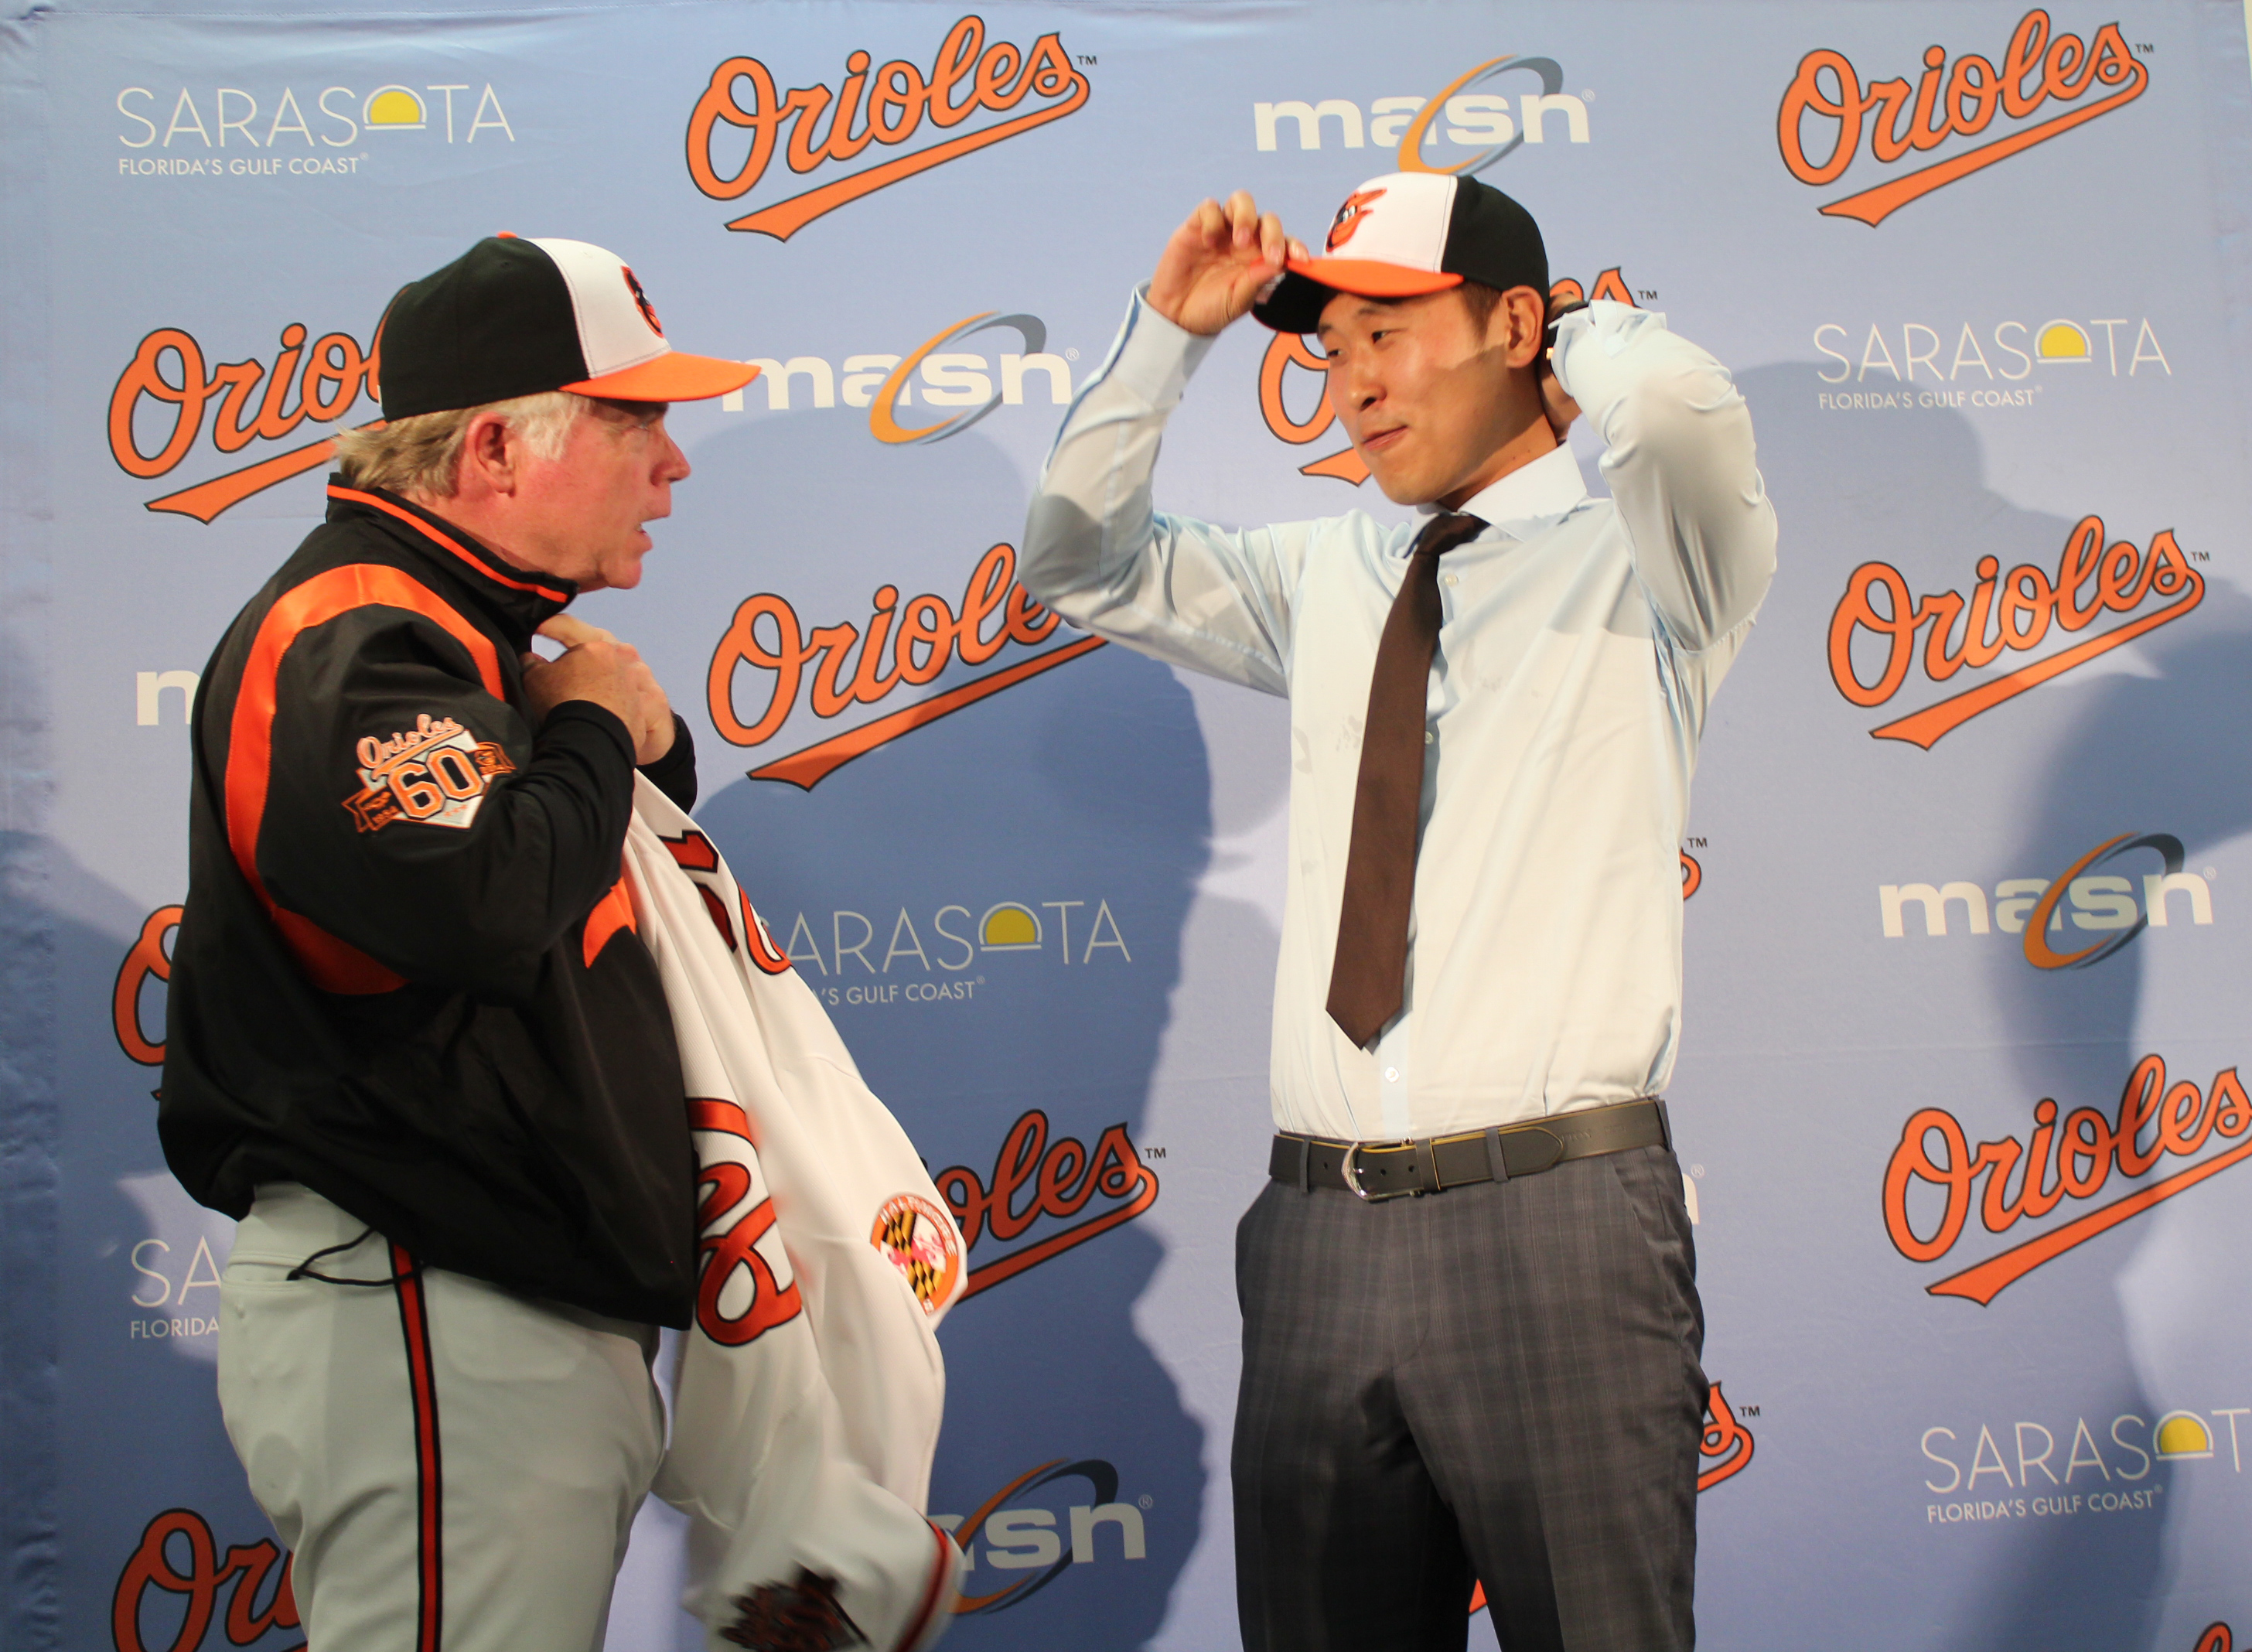 Korean pitcher Yoon Suk-min, right, puts on the Baltimore Orioles cap, while the Orioles manager Buck Showalter waits to help him put on his new uniform jersey. (Yonhap)